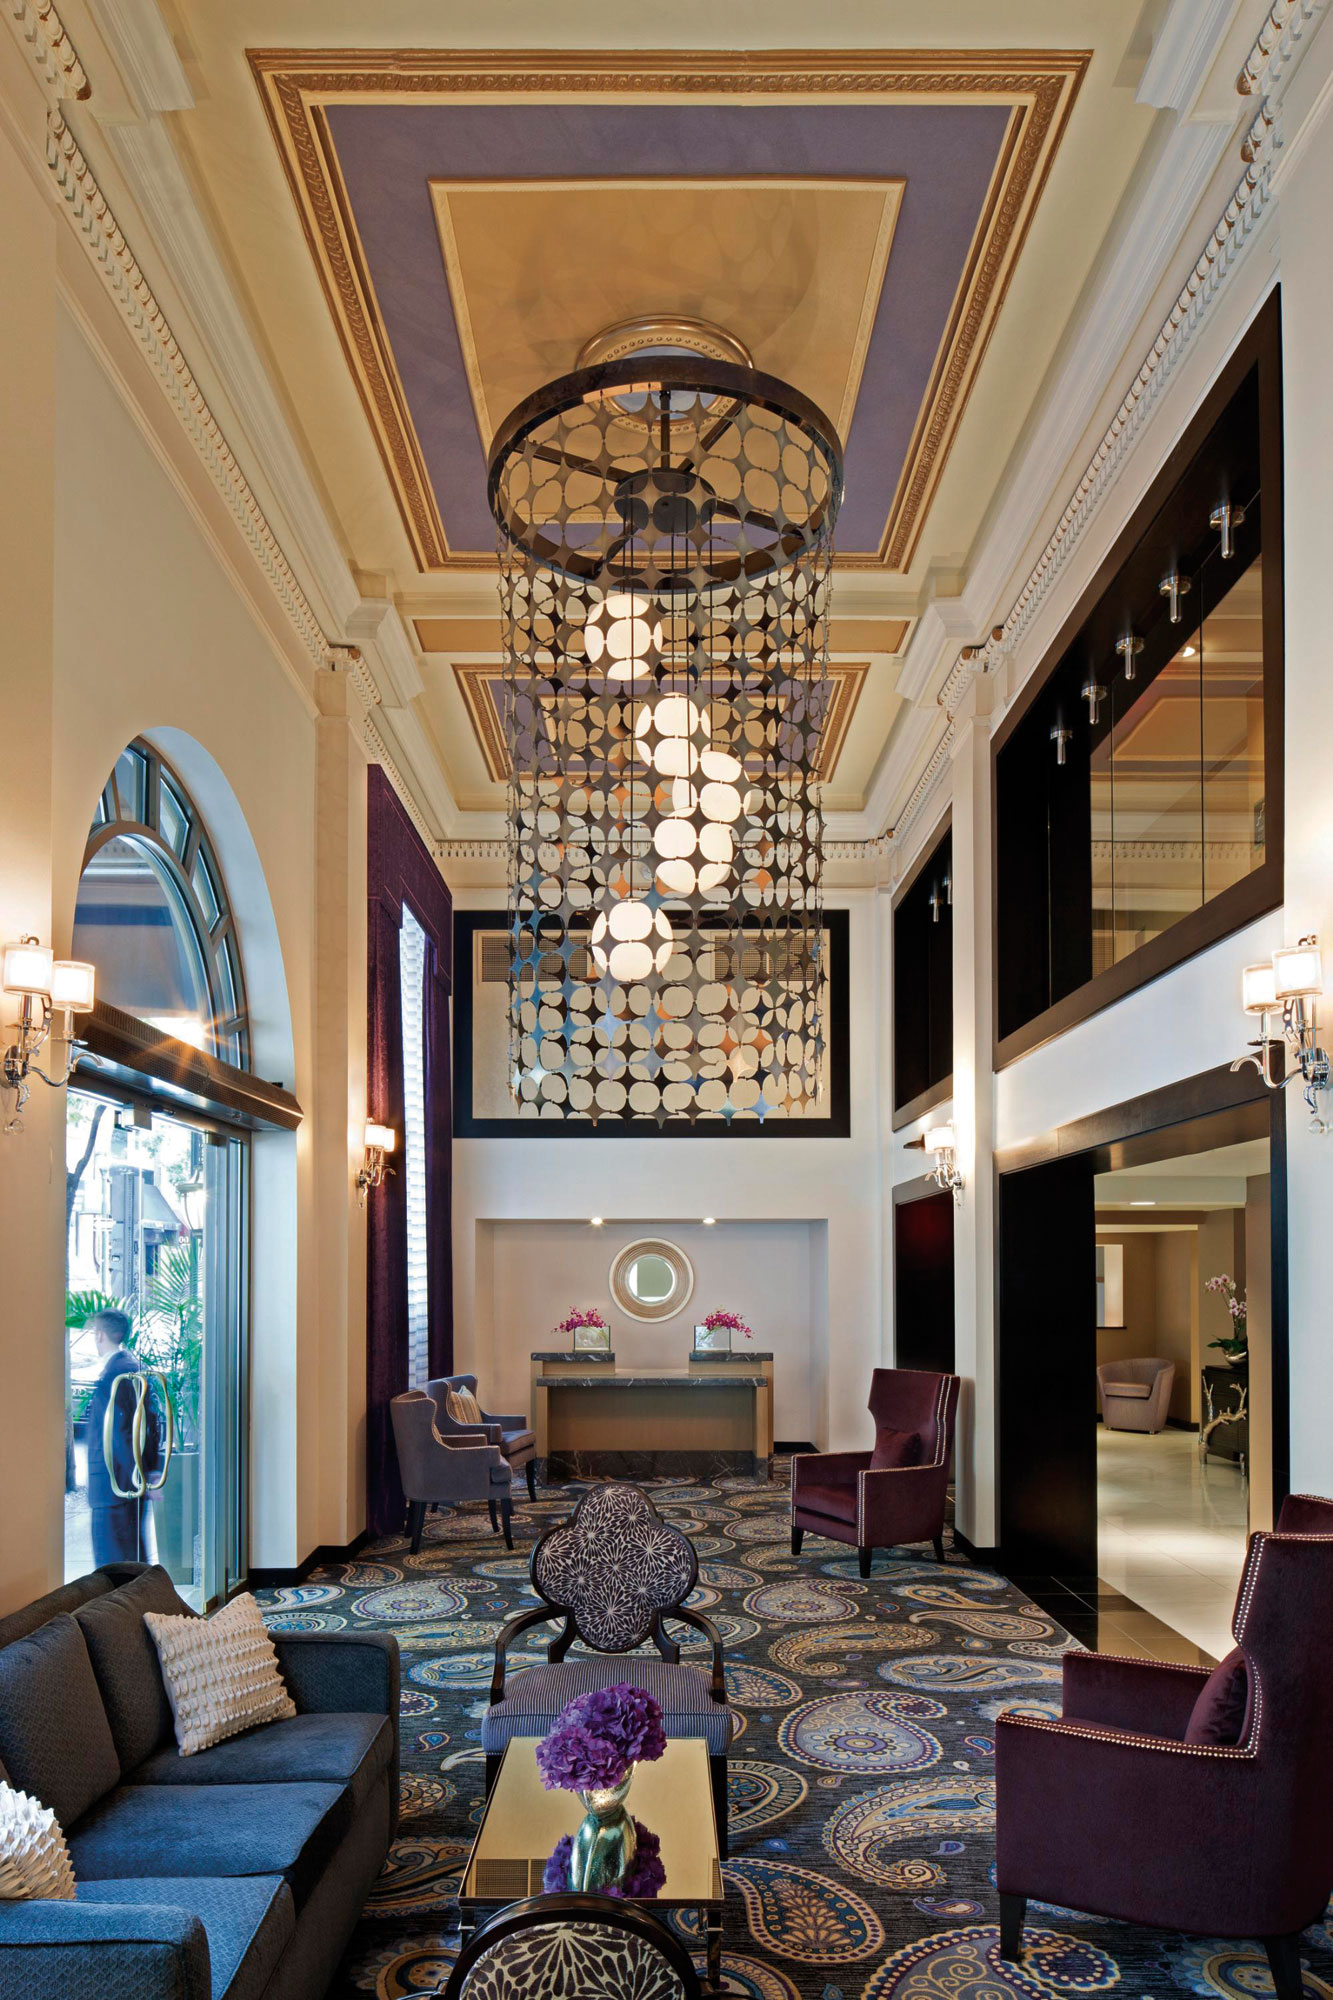 The-Latham-Hotel-Lobby_13415_High